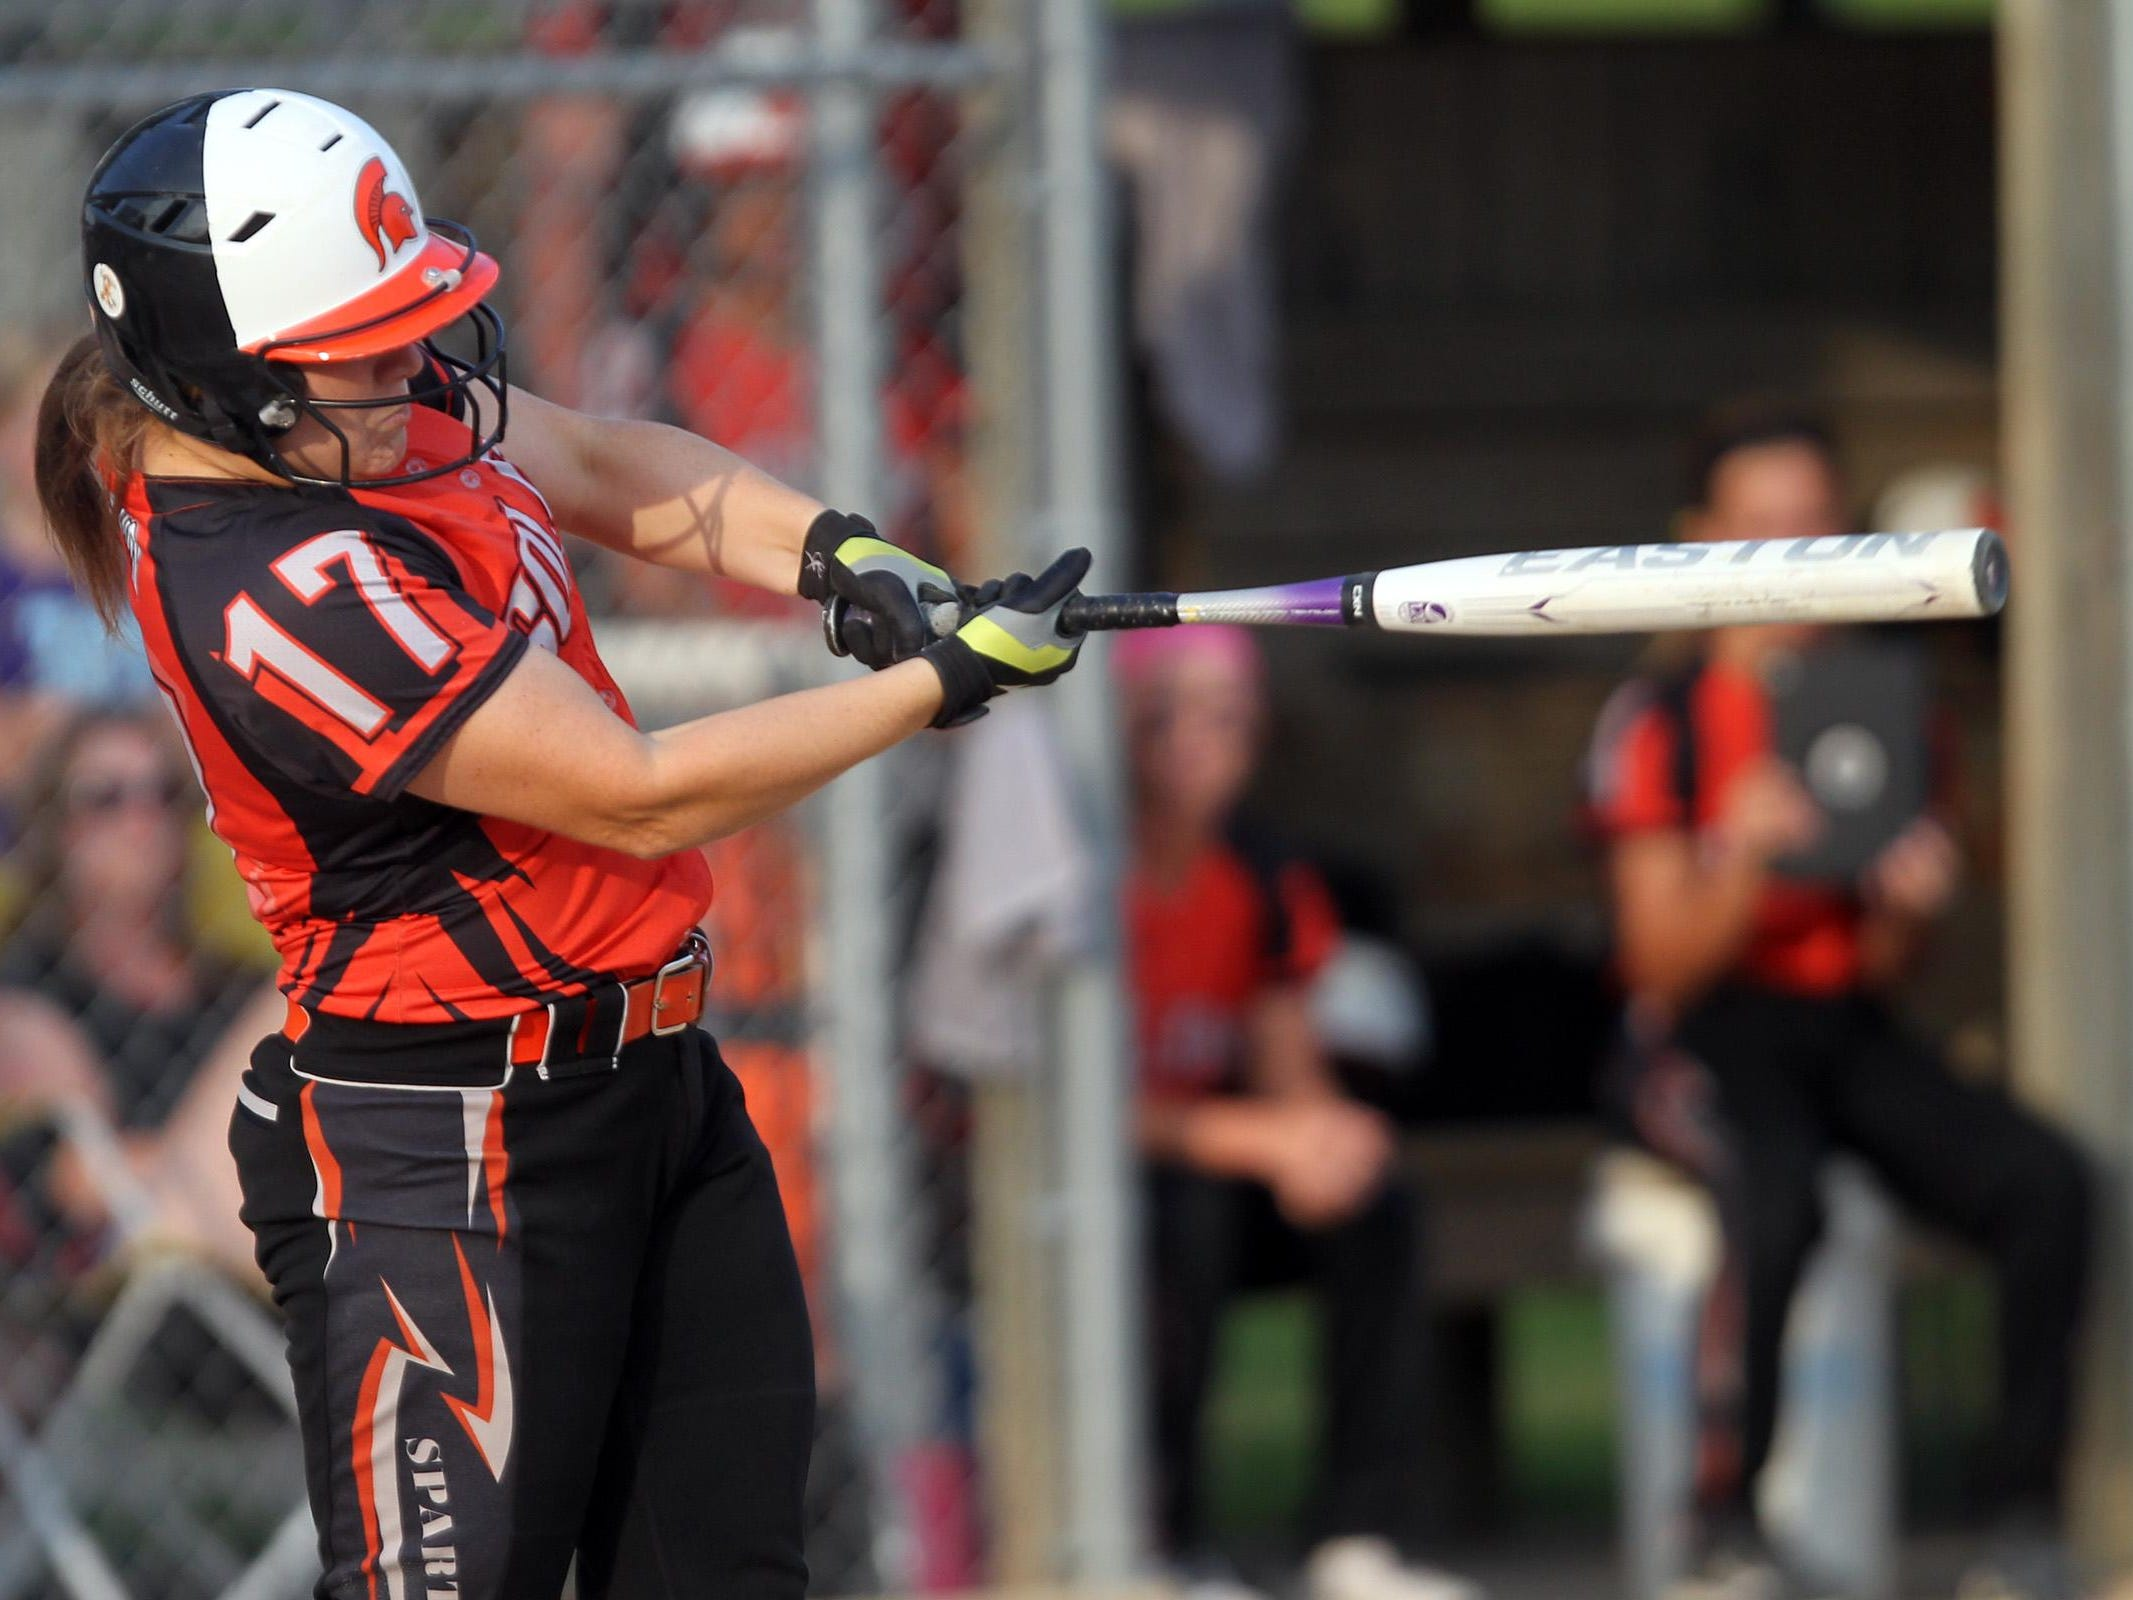 Solon's Monika Bevans takes a swing during the Spartans' regional game against Mid-Prairie at Solon on Friday, July 10, 2015. David Scrivner / Iowa City Press-Citizen